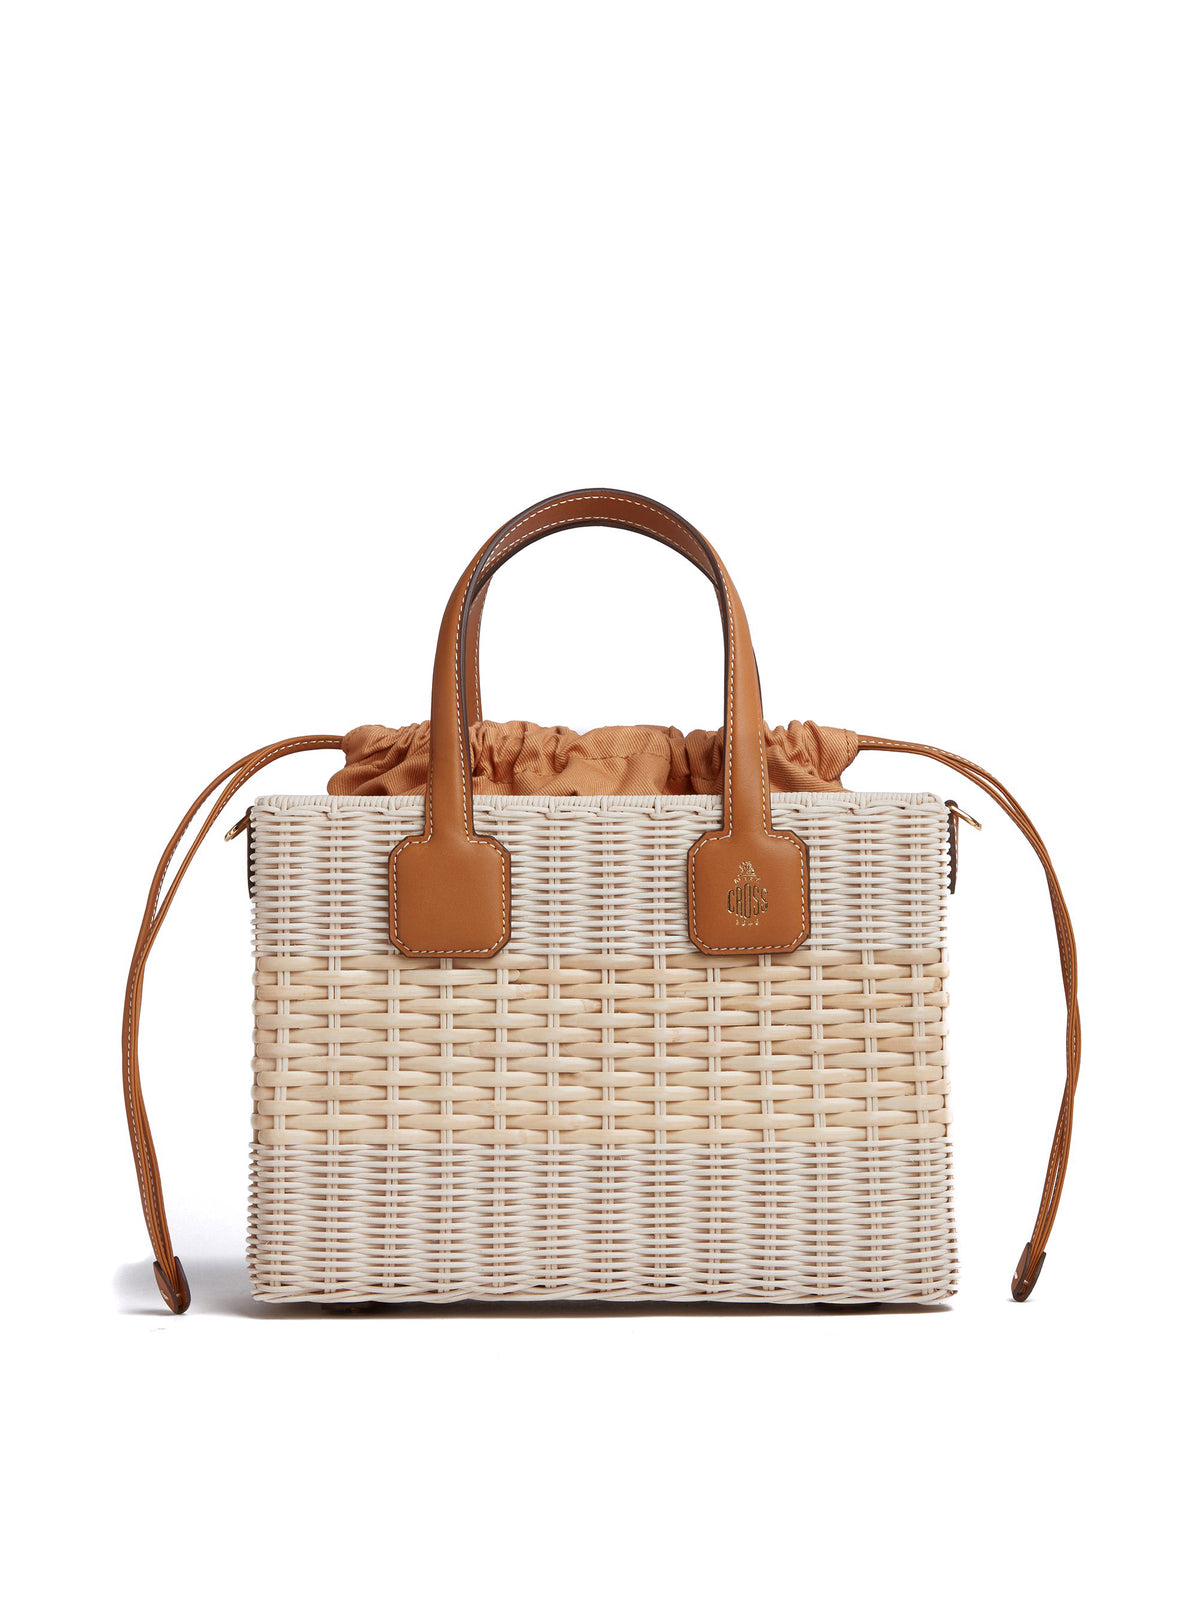 Manray Rattan & Leather Tote Bag Soft Calf Luggage / Bleach Rattan Front